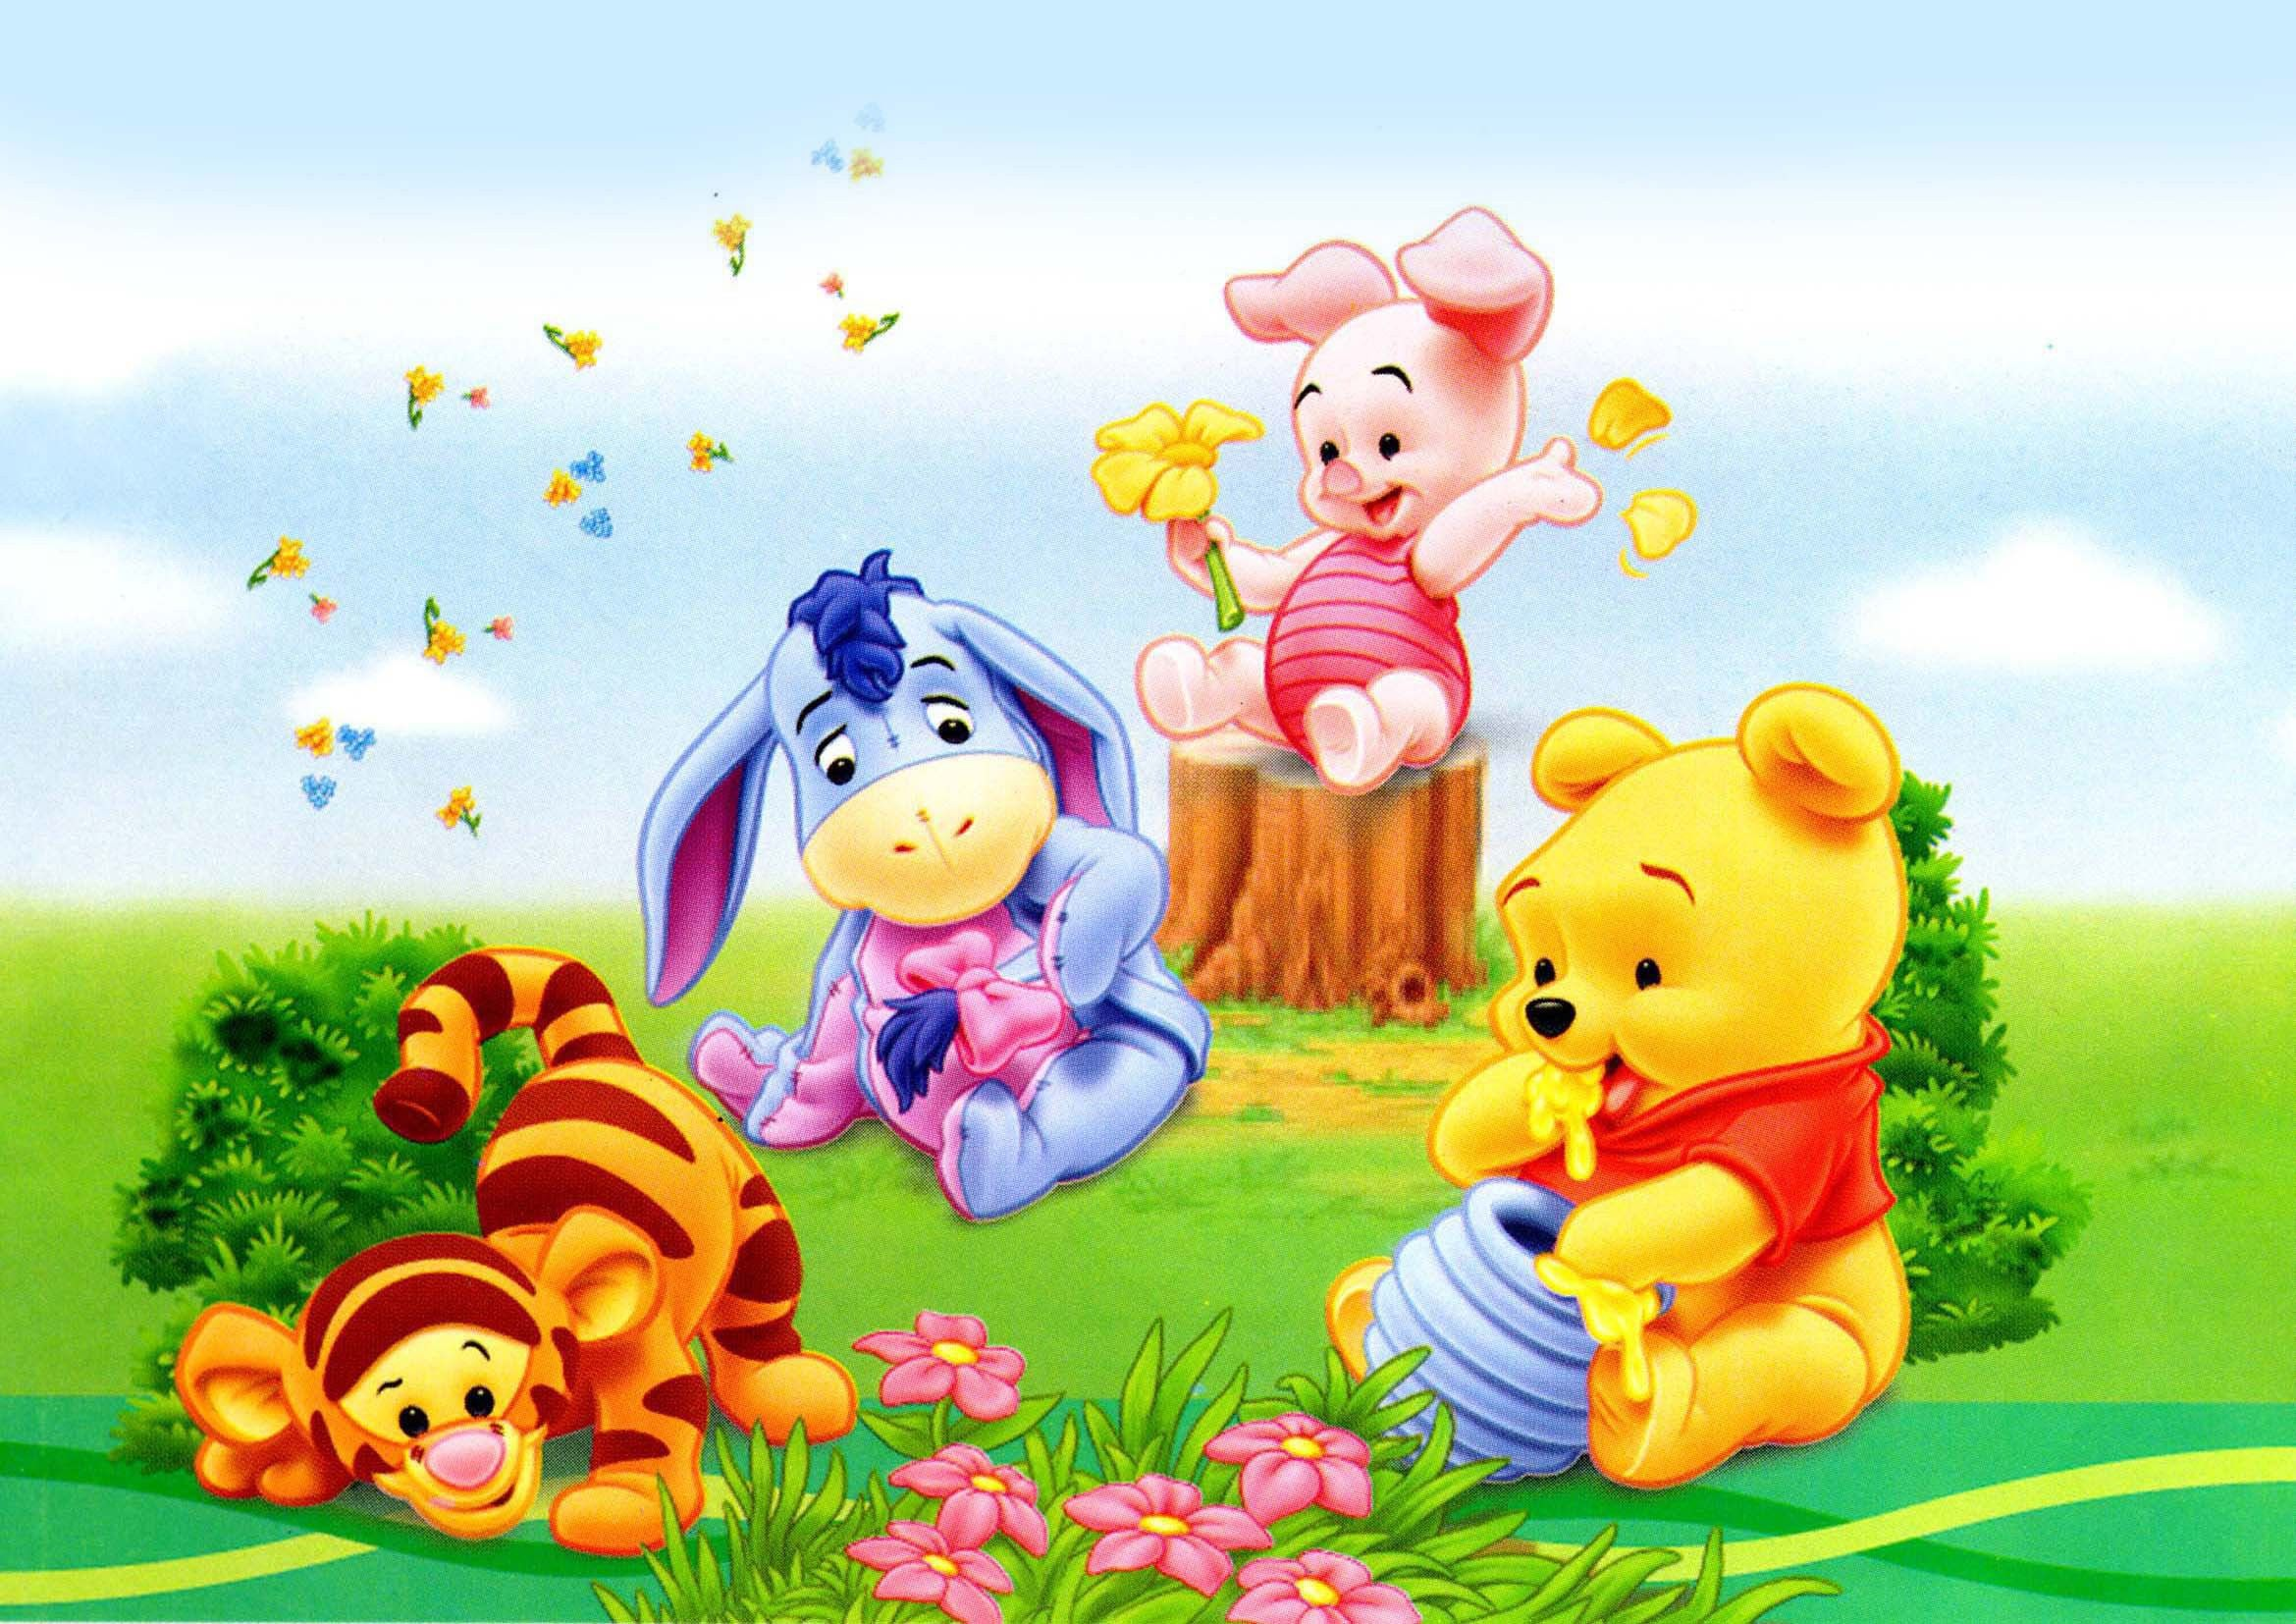 e61c9457f1b7 Baby pooh and friends